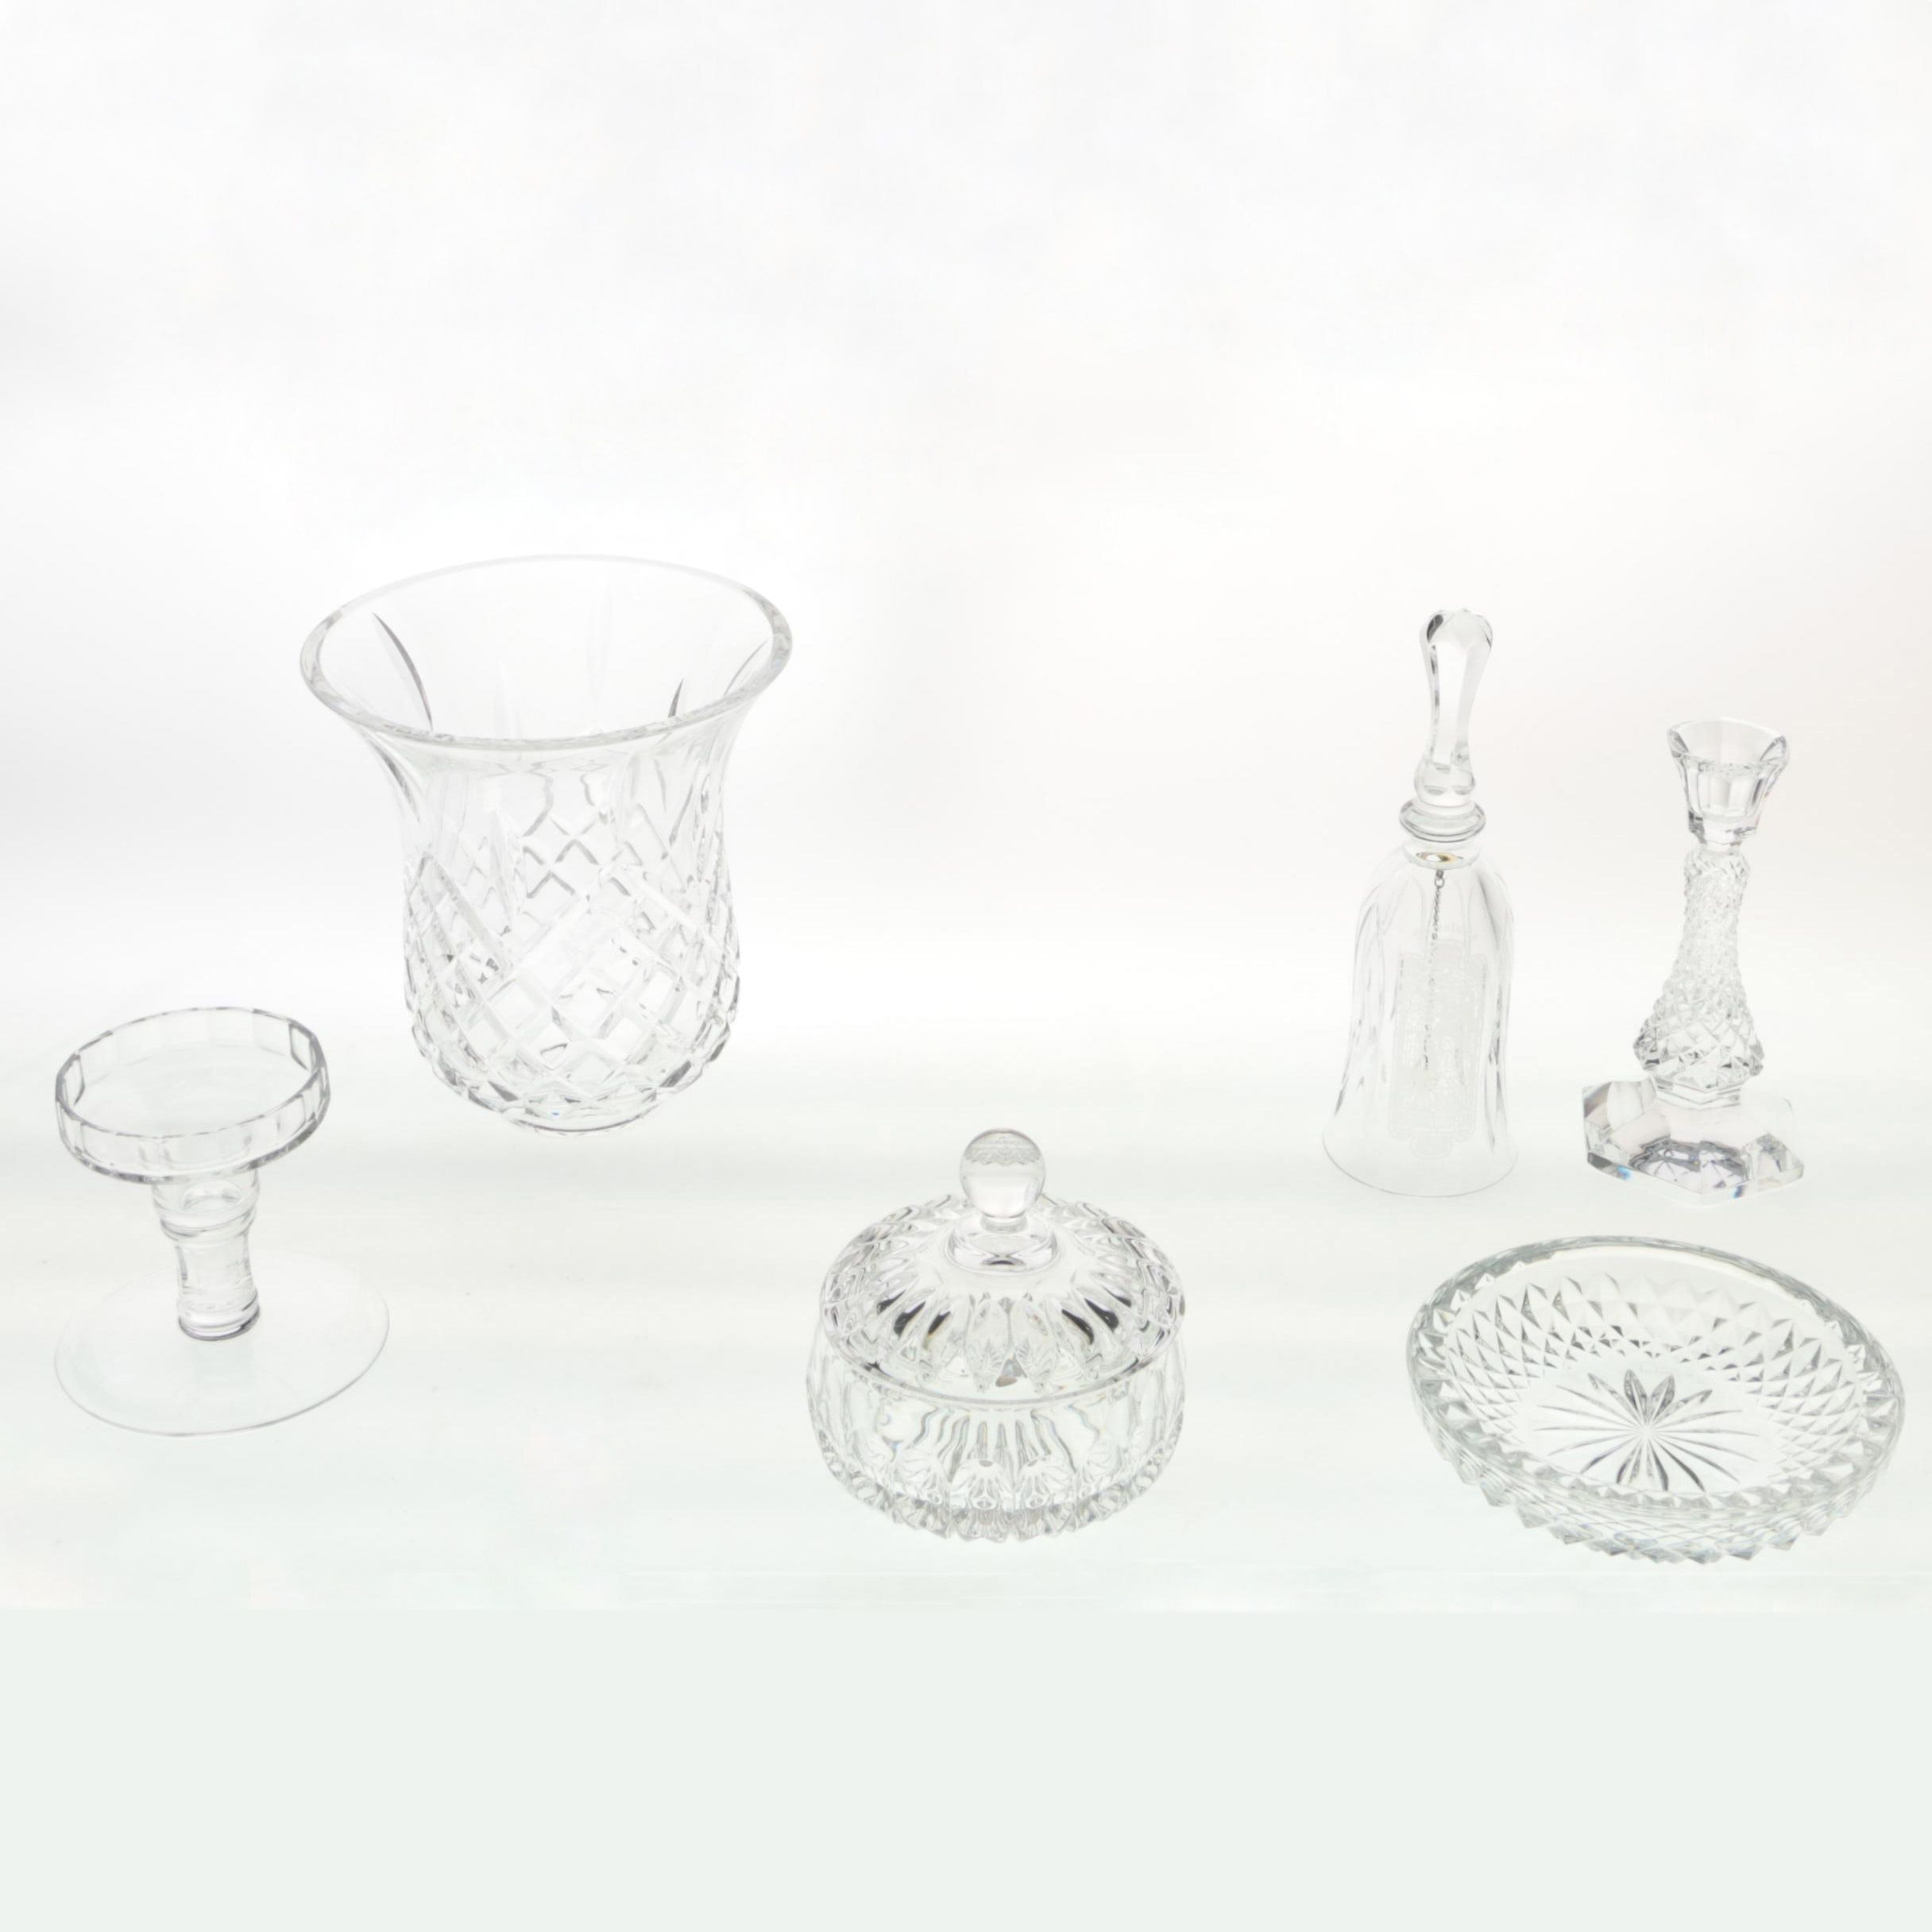 Decorative Crystal Including Val St. Lambert and Gorham